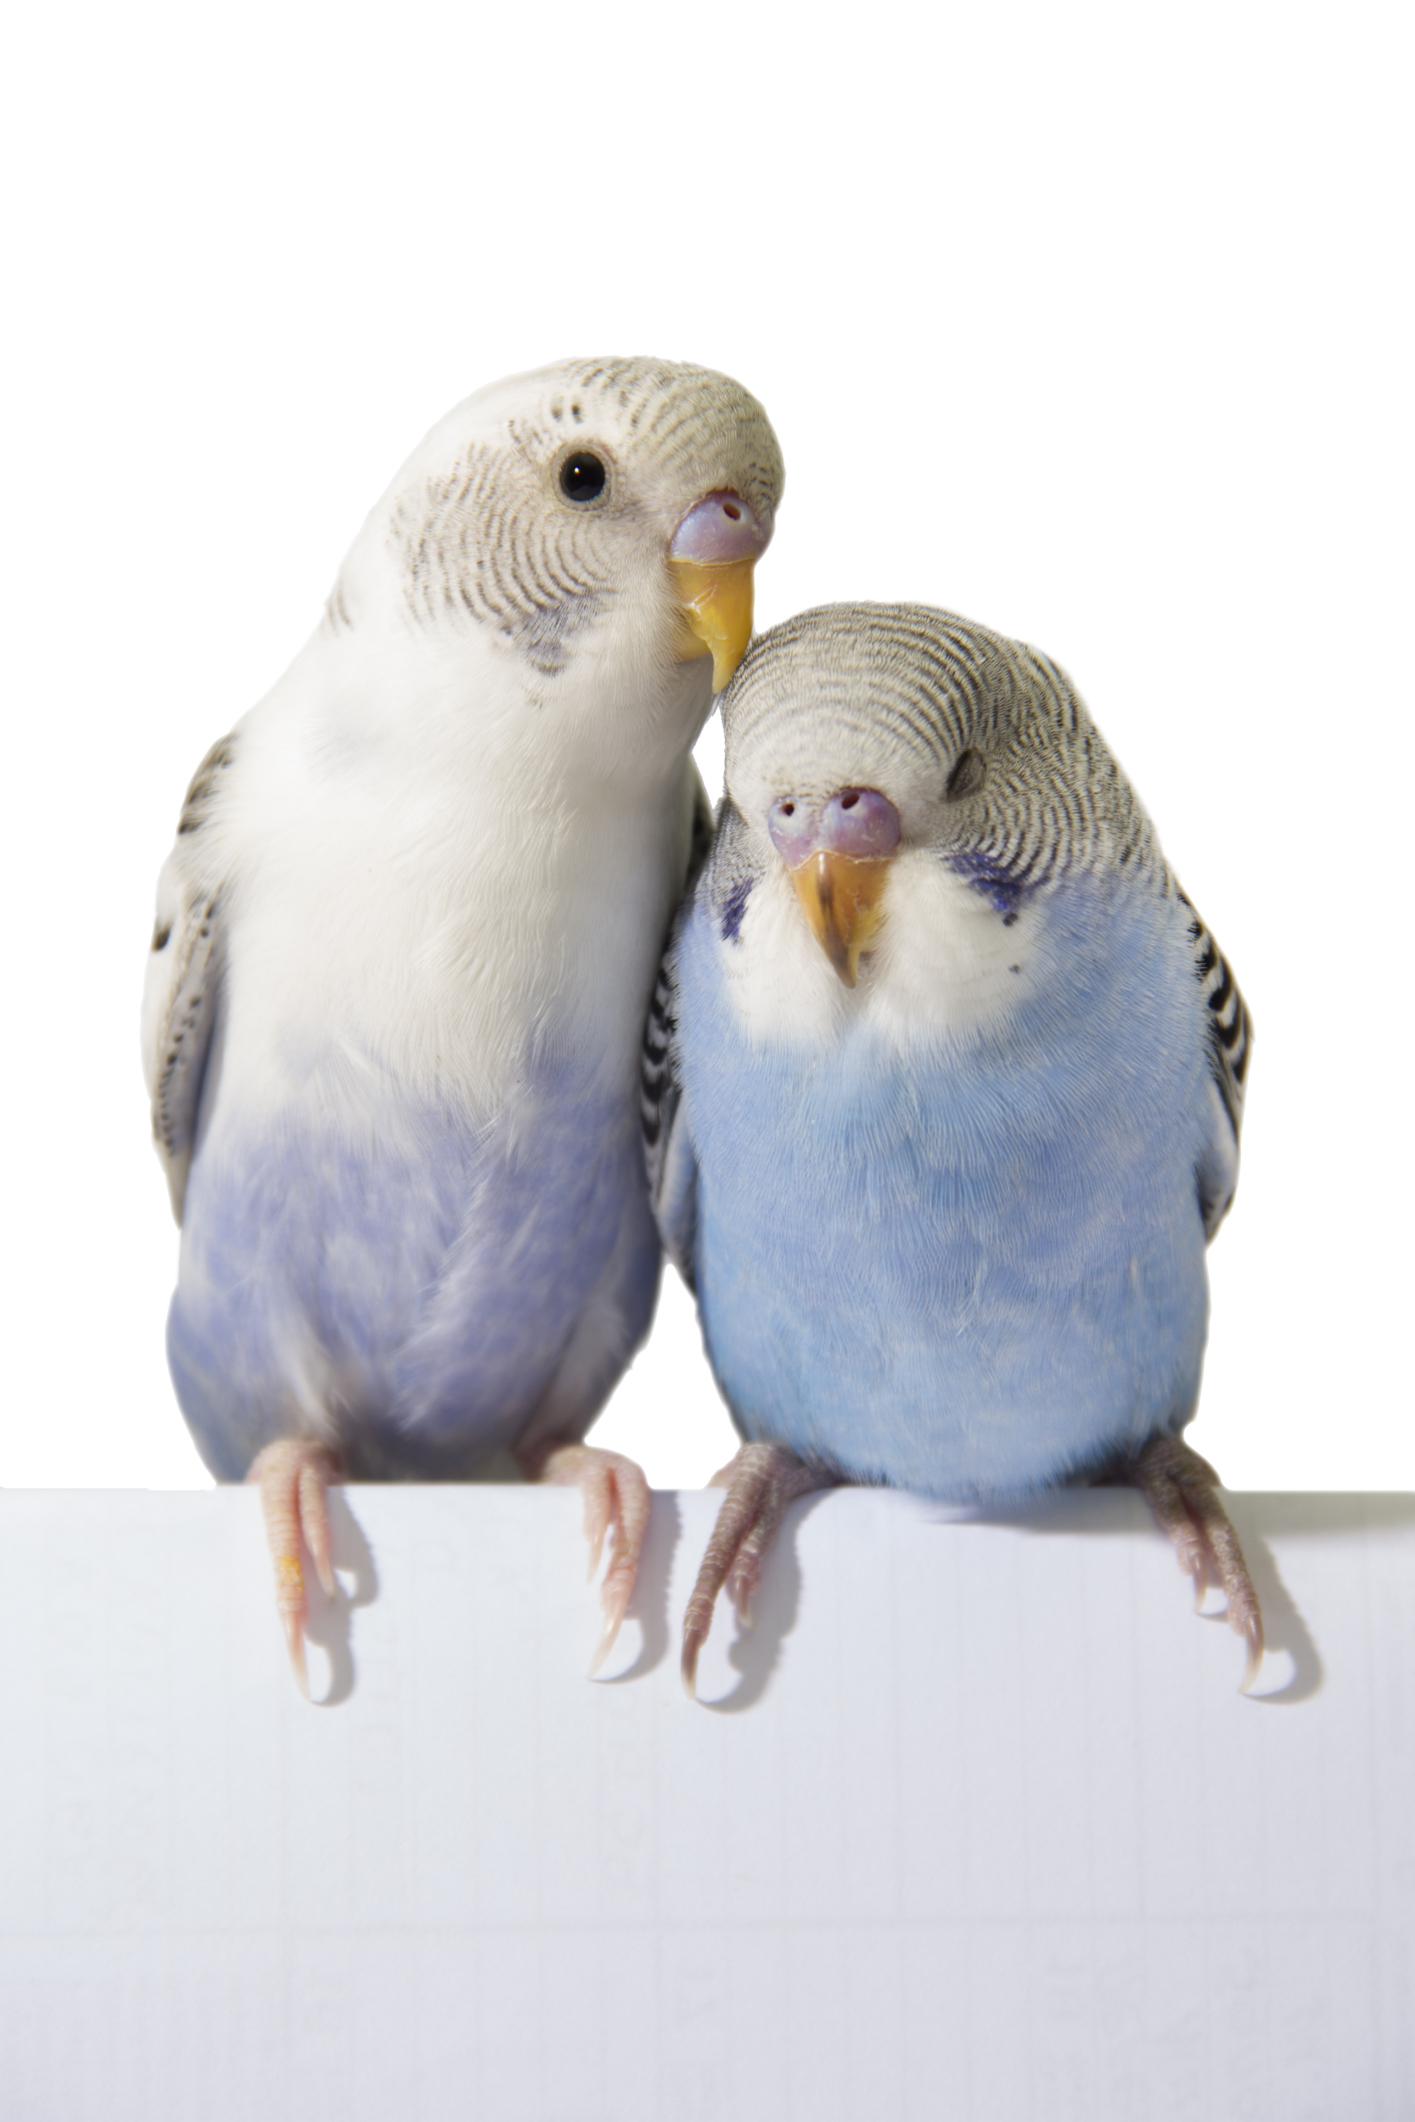 How Can I Tell if My Parakeet is Happy? | Cuteness